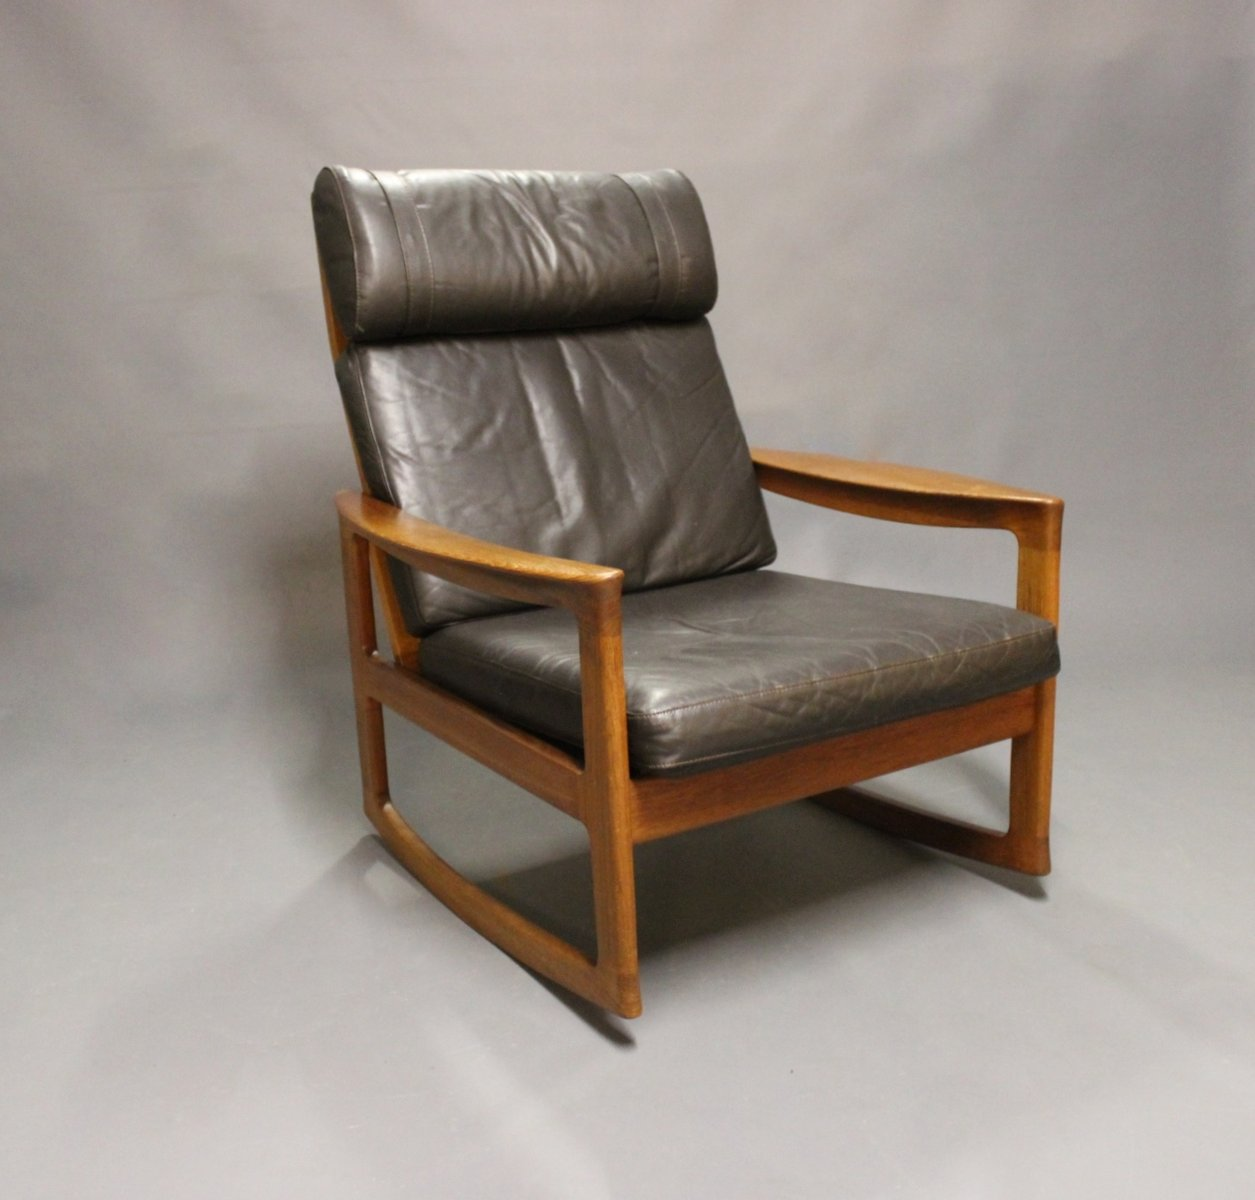 Teak Amp Black Leather Rocking Chair By Ole Wanscher For